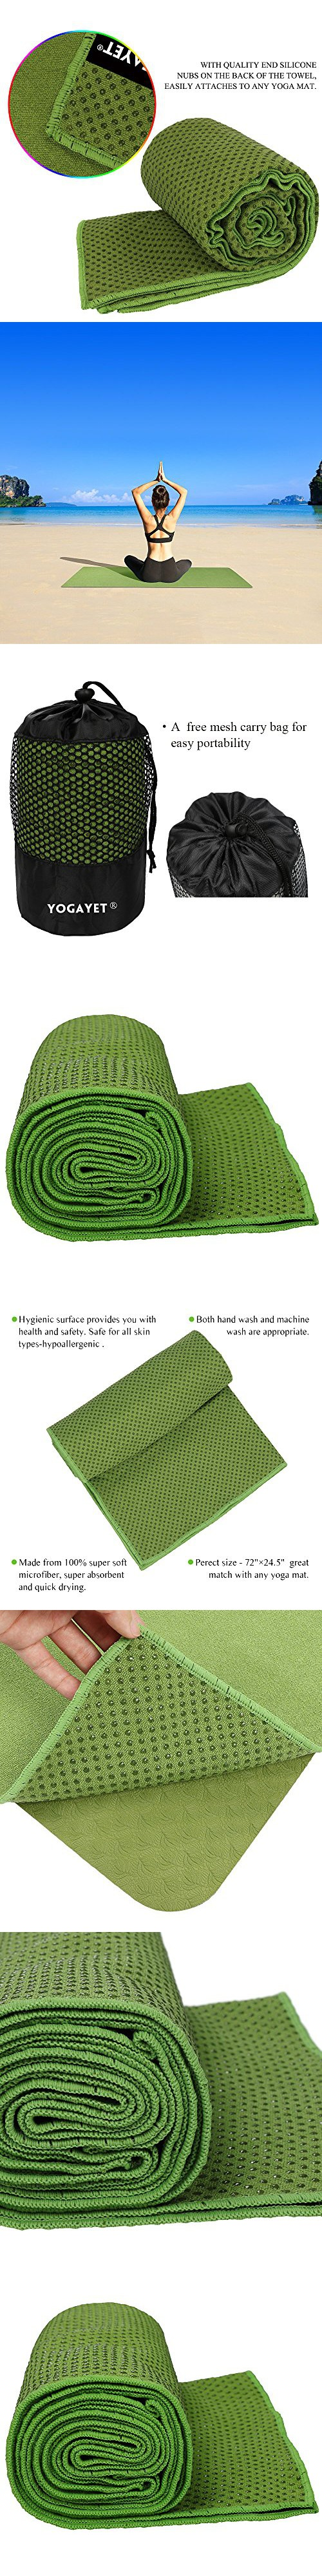 "YOGAYET Skidless Hot Yoga Towel Ultra Absorbent Microfiber Non Slip Mat Towels Premium Mat-Size 72""×24.5"" Grip Design Machine Washable(Green)"